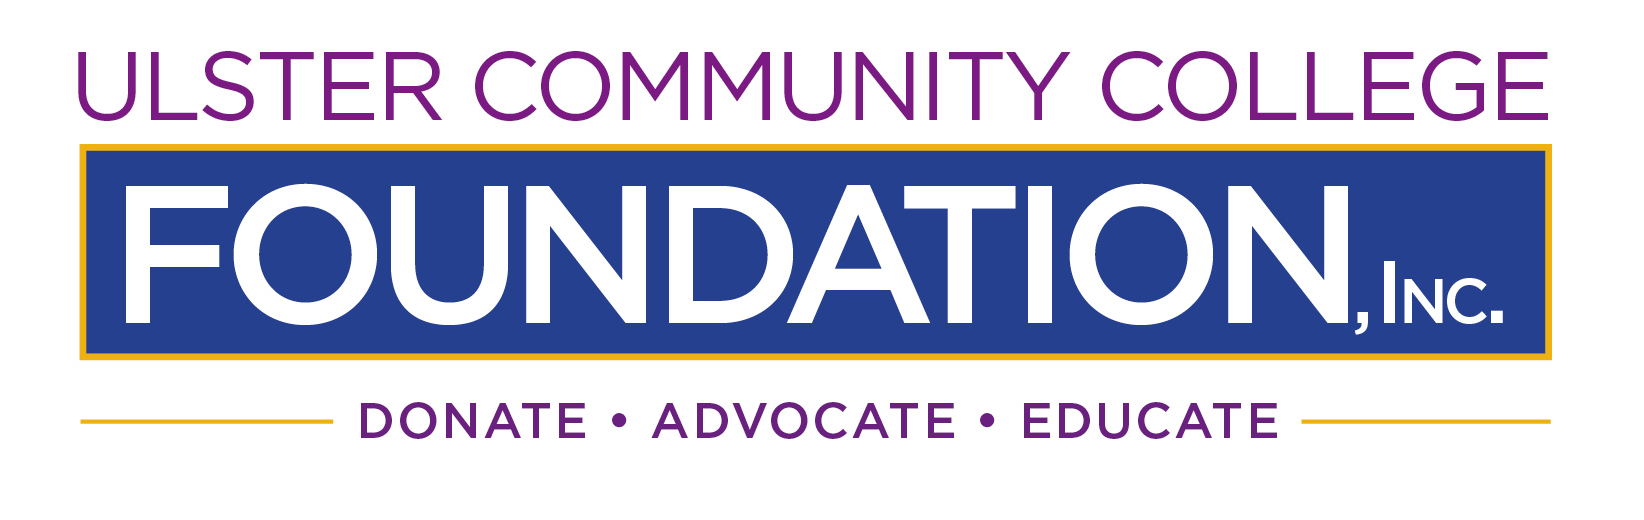 Ulster Community College Foundation Inc. Donate - Advocate  - Educate